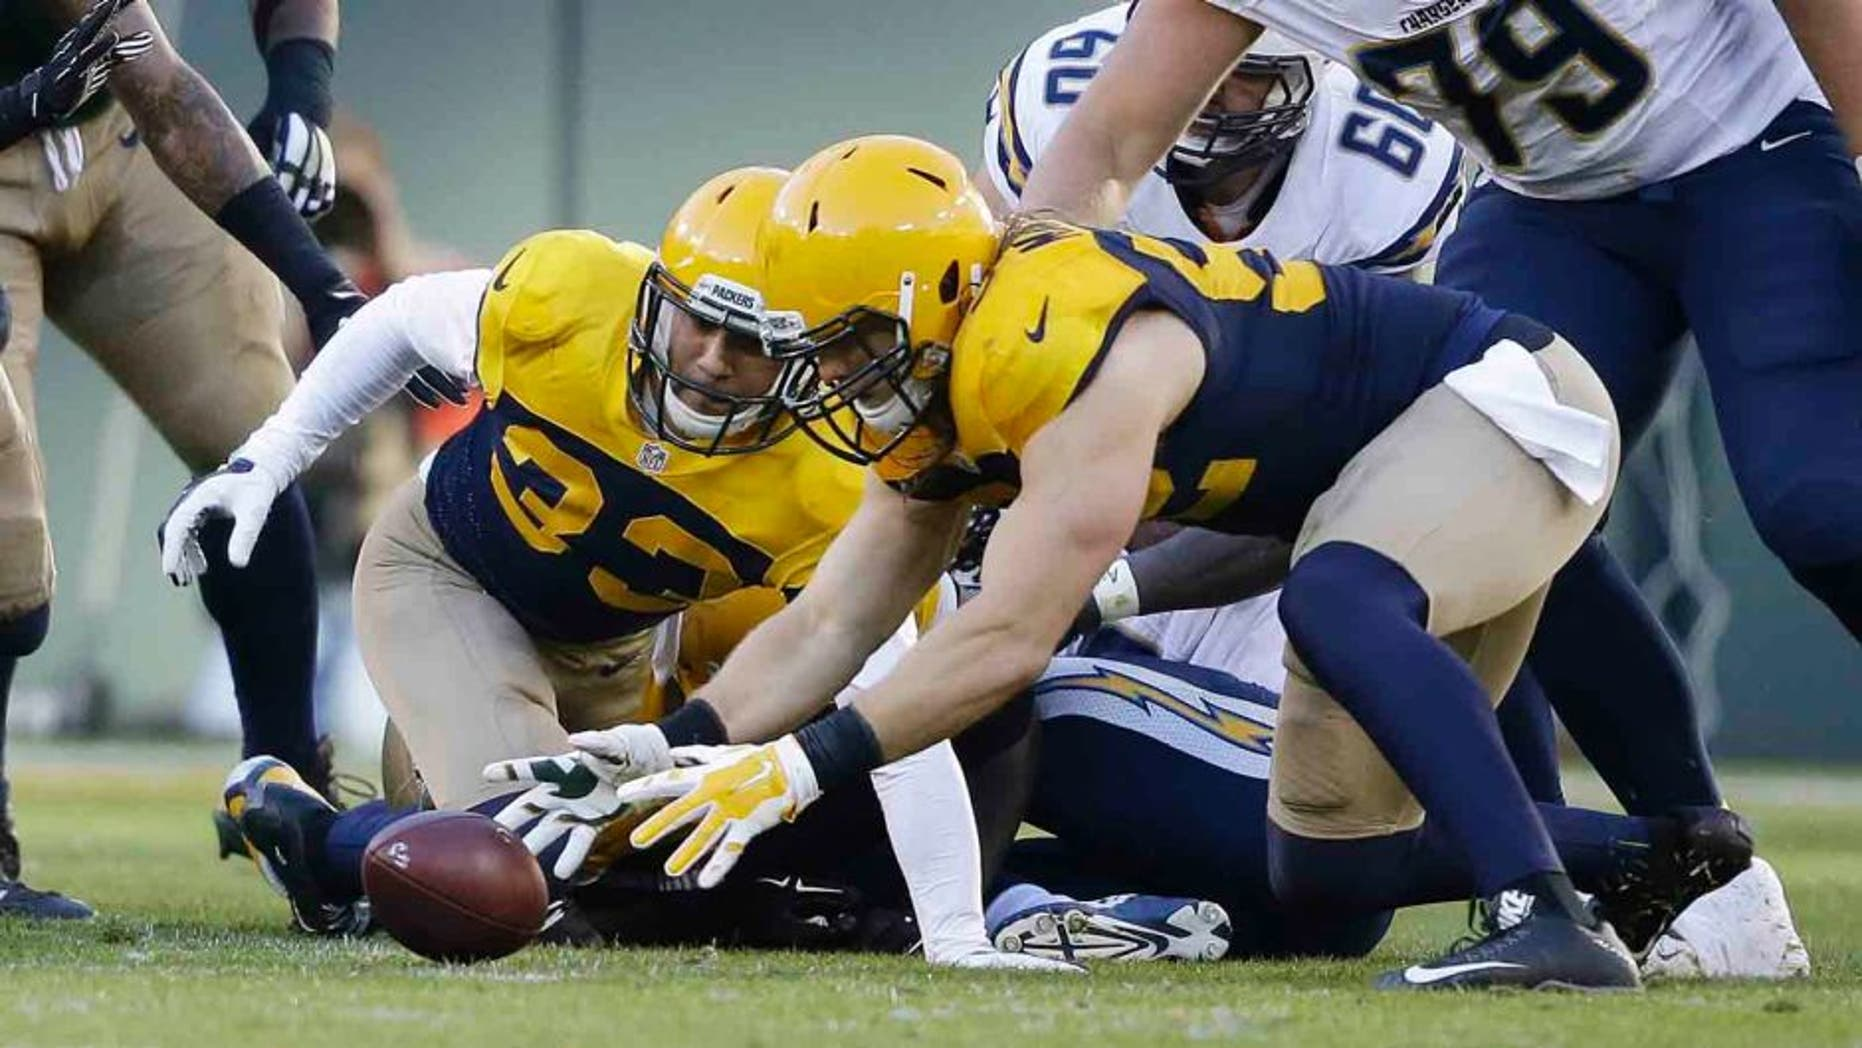 The Green Bay Packers' Clay Matthews recovers a fumble by the San Diego Chargers' Melvin Gordon during the first half Sunday, Oct. 18, 2015, in Green Bay, Wis.